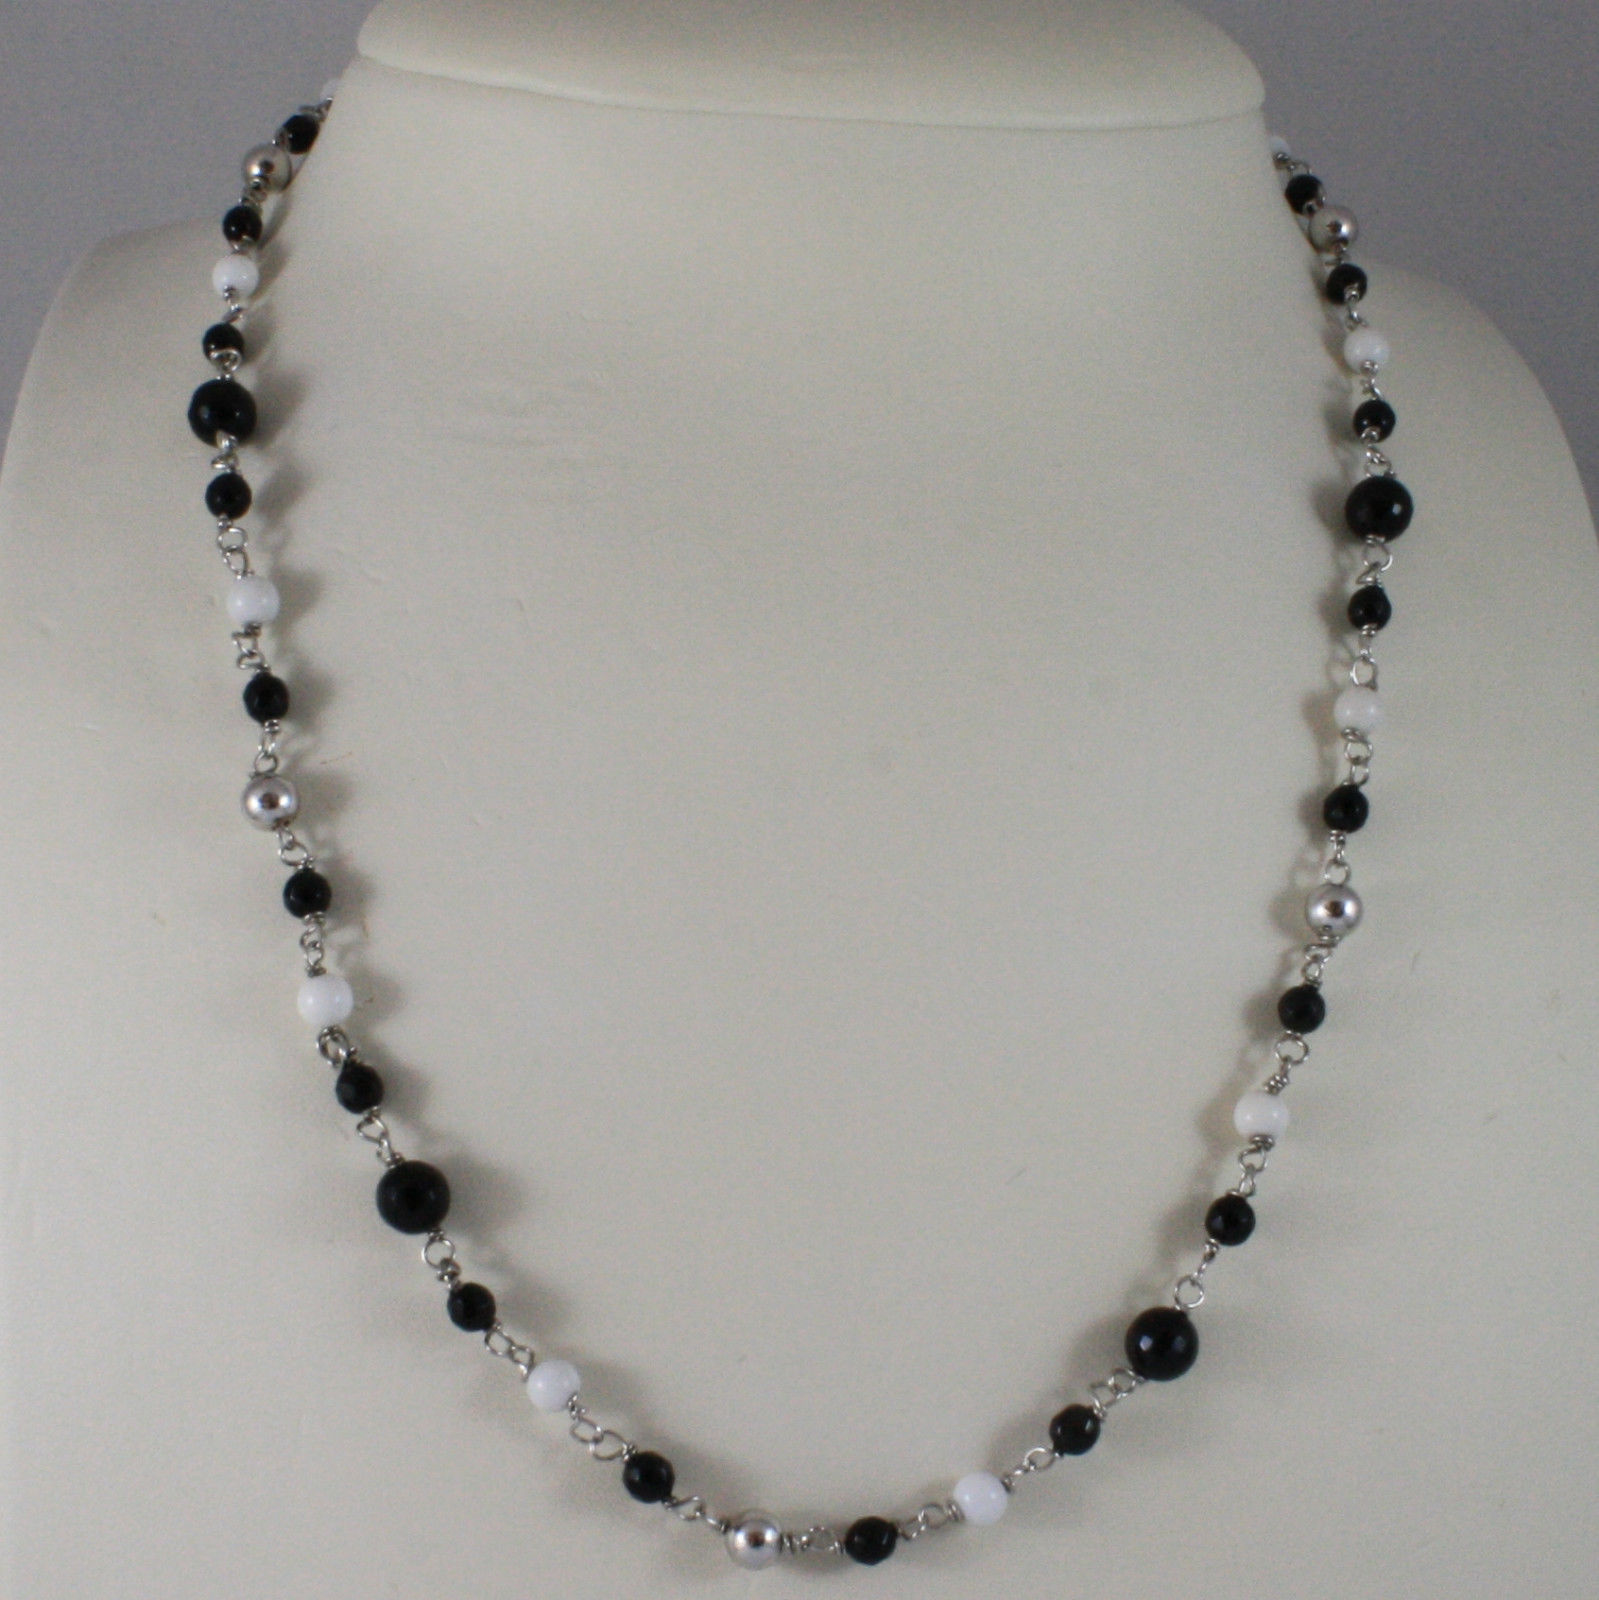 .925 SILVER RHODIUM NECKLACE WITH BLACK ONYX, WHITE AGATE AND SILVER SPHERES